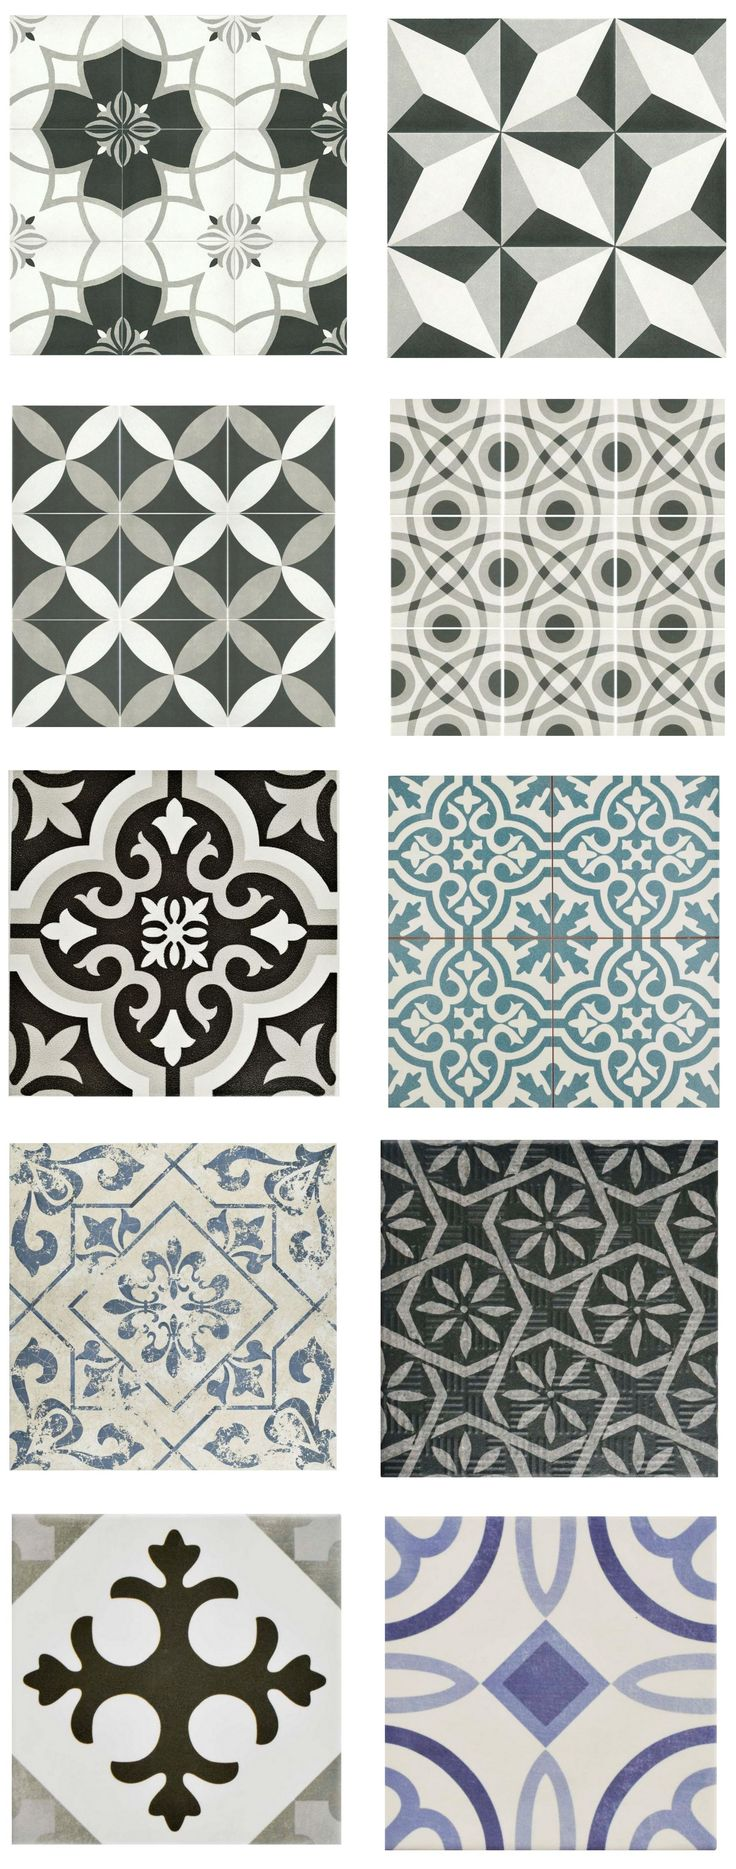 patterned ceramic tiles. fabulous patterns prints u wallpaper with